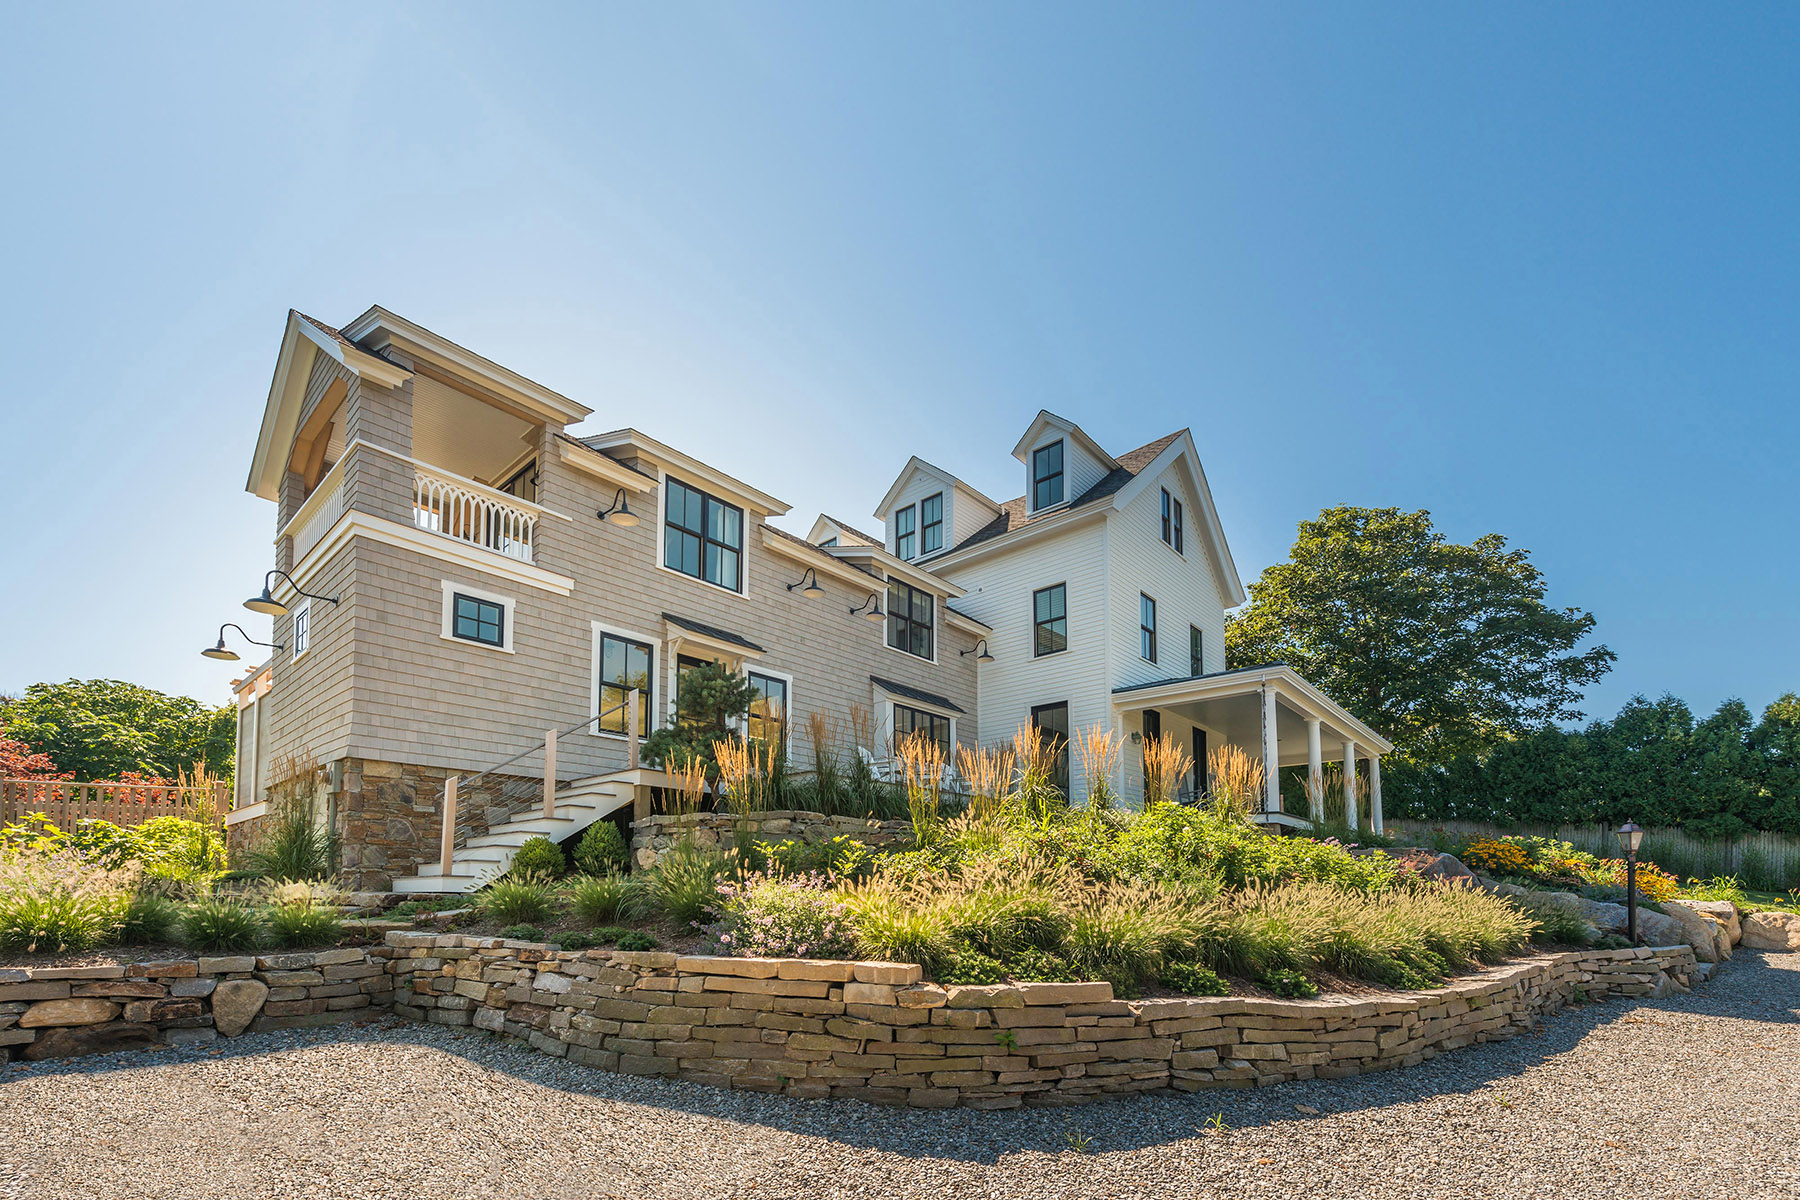 Single Family Home for Sale at Greycote 18 Wauwinnet Avenue Watch Hill Village Westerly, Rhode Island, 02891 United States